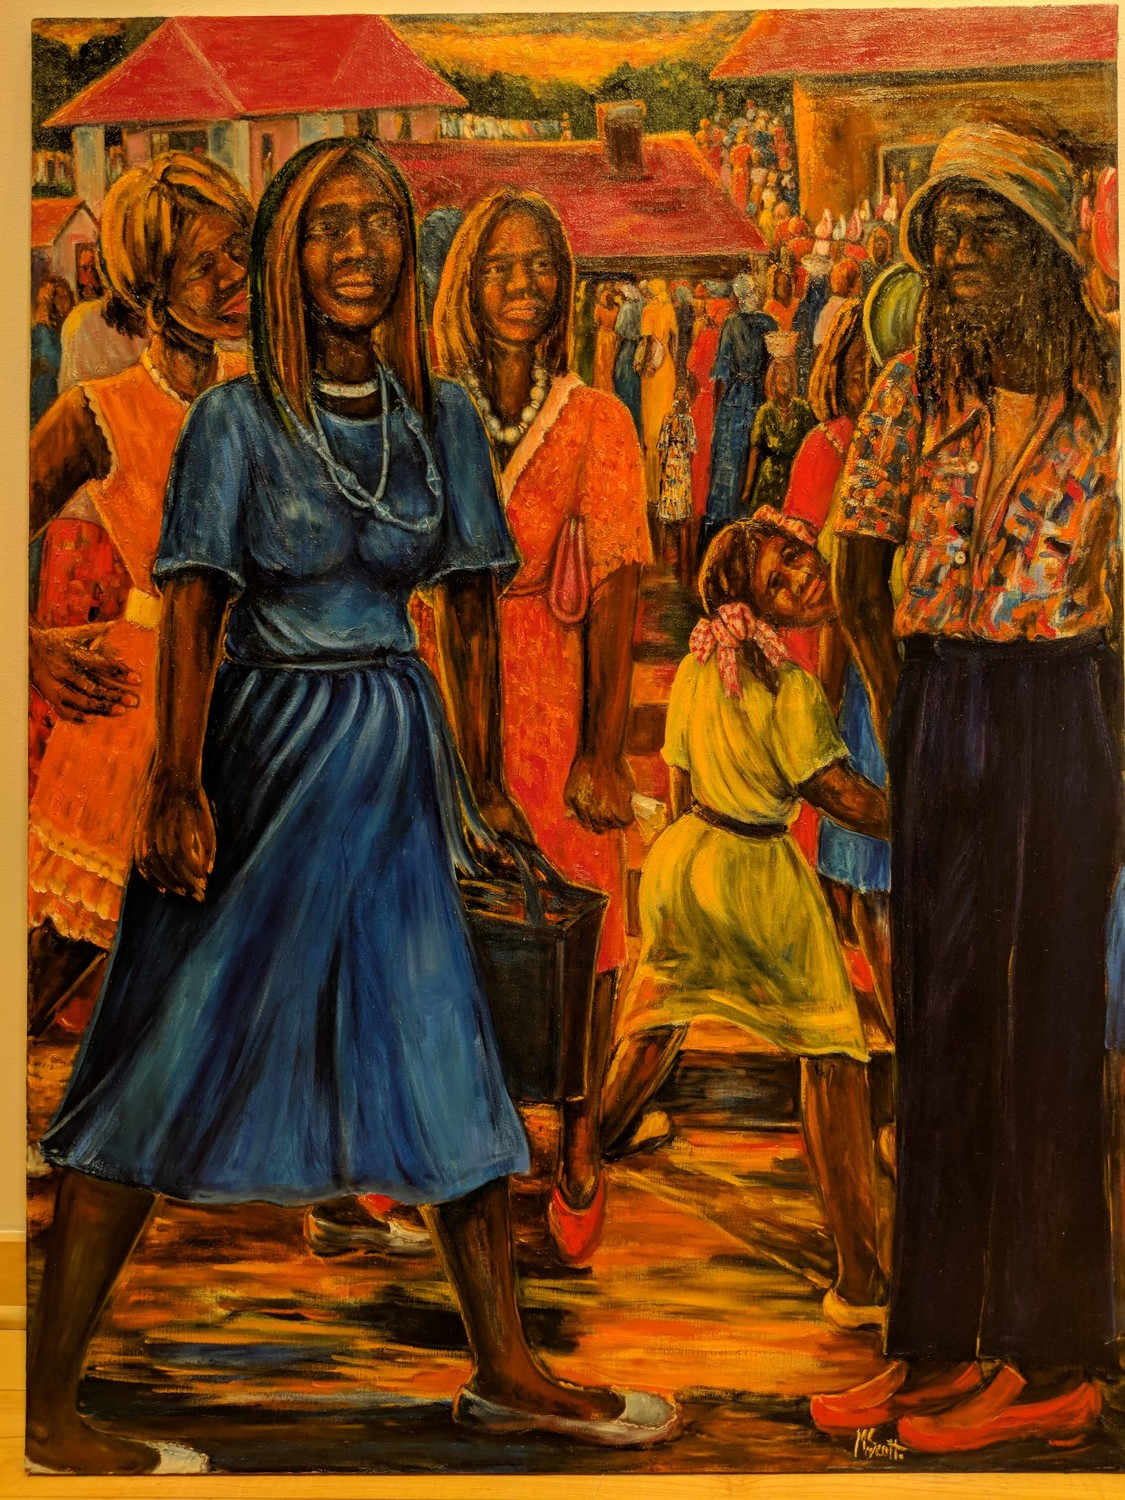 Madge Scott's 'Touching the Skies' is one of the pieces featured in 'The Way Back,' an exhibit celebrating Black History Month at the Yonkers Public Library's Riverfront Art Gallery. The exhibit runs through Feb. 21.